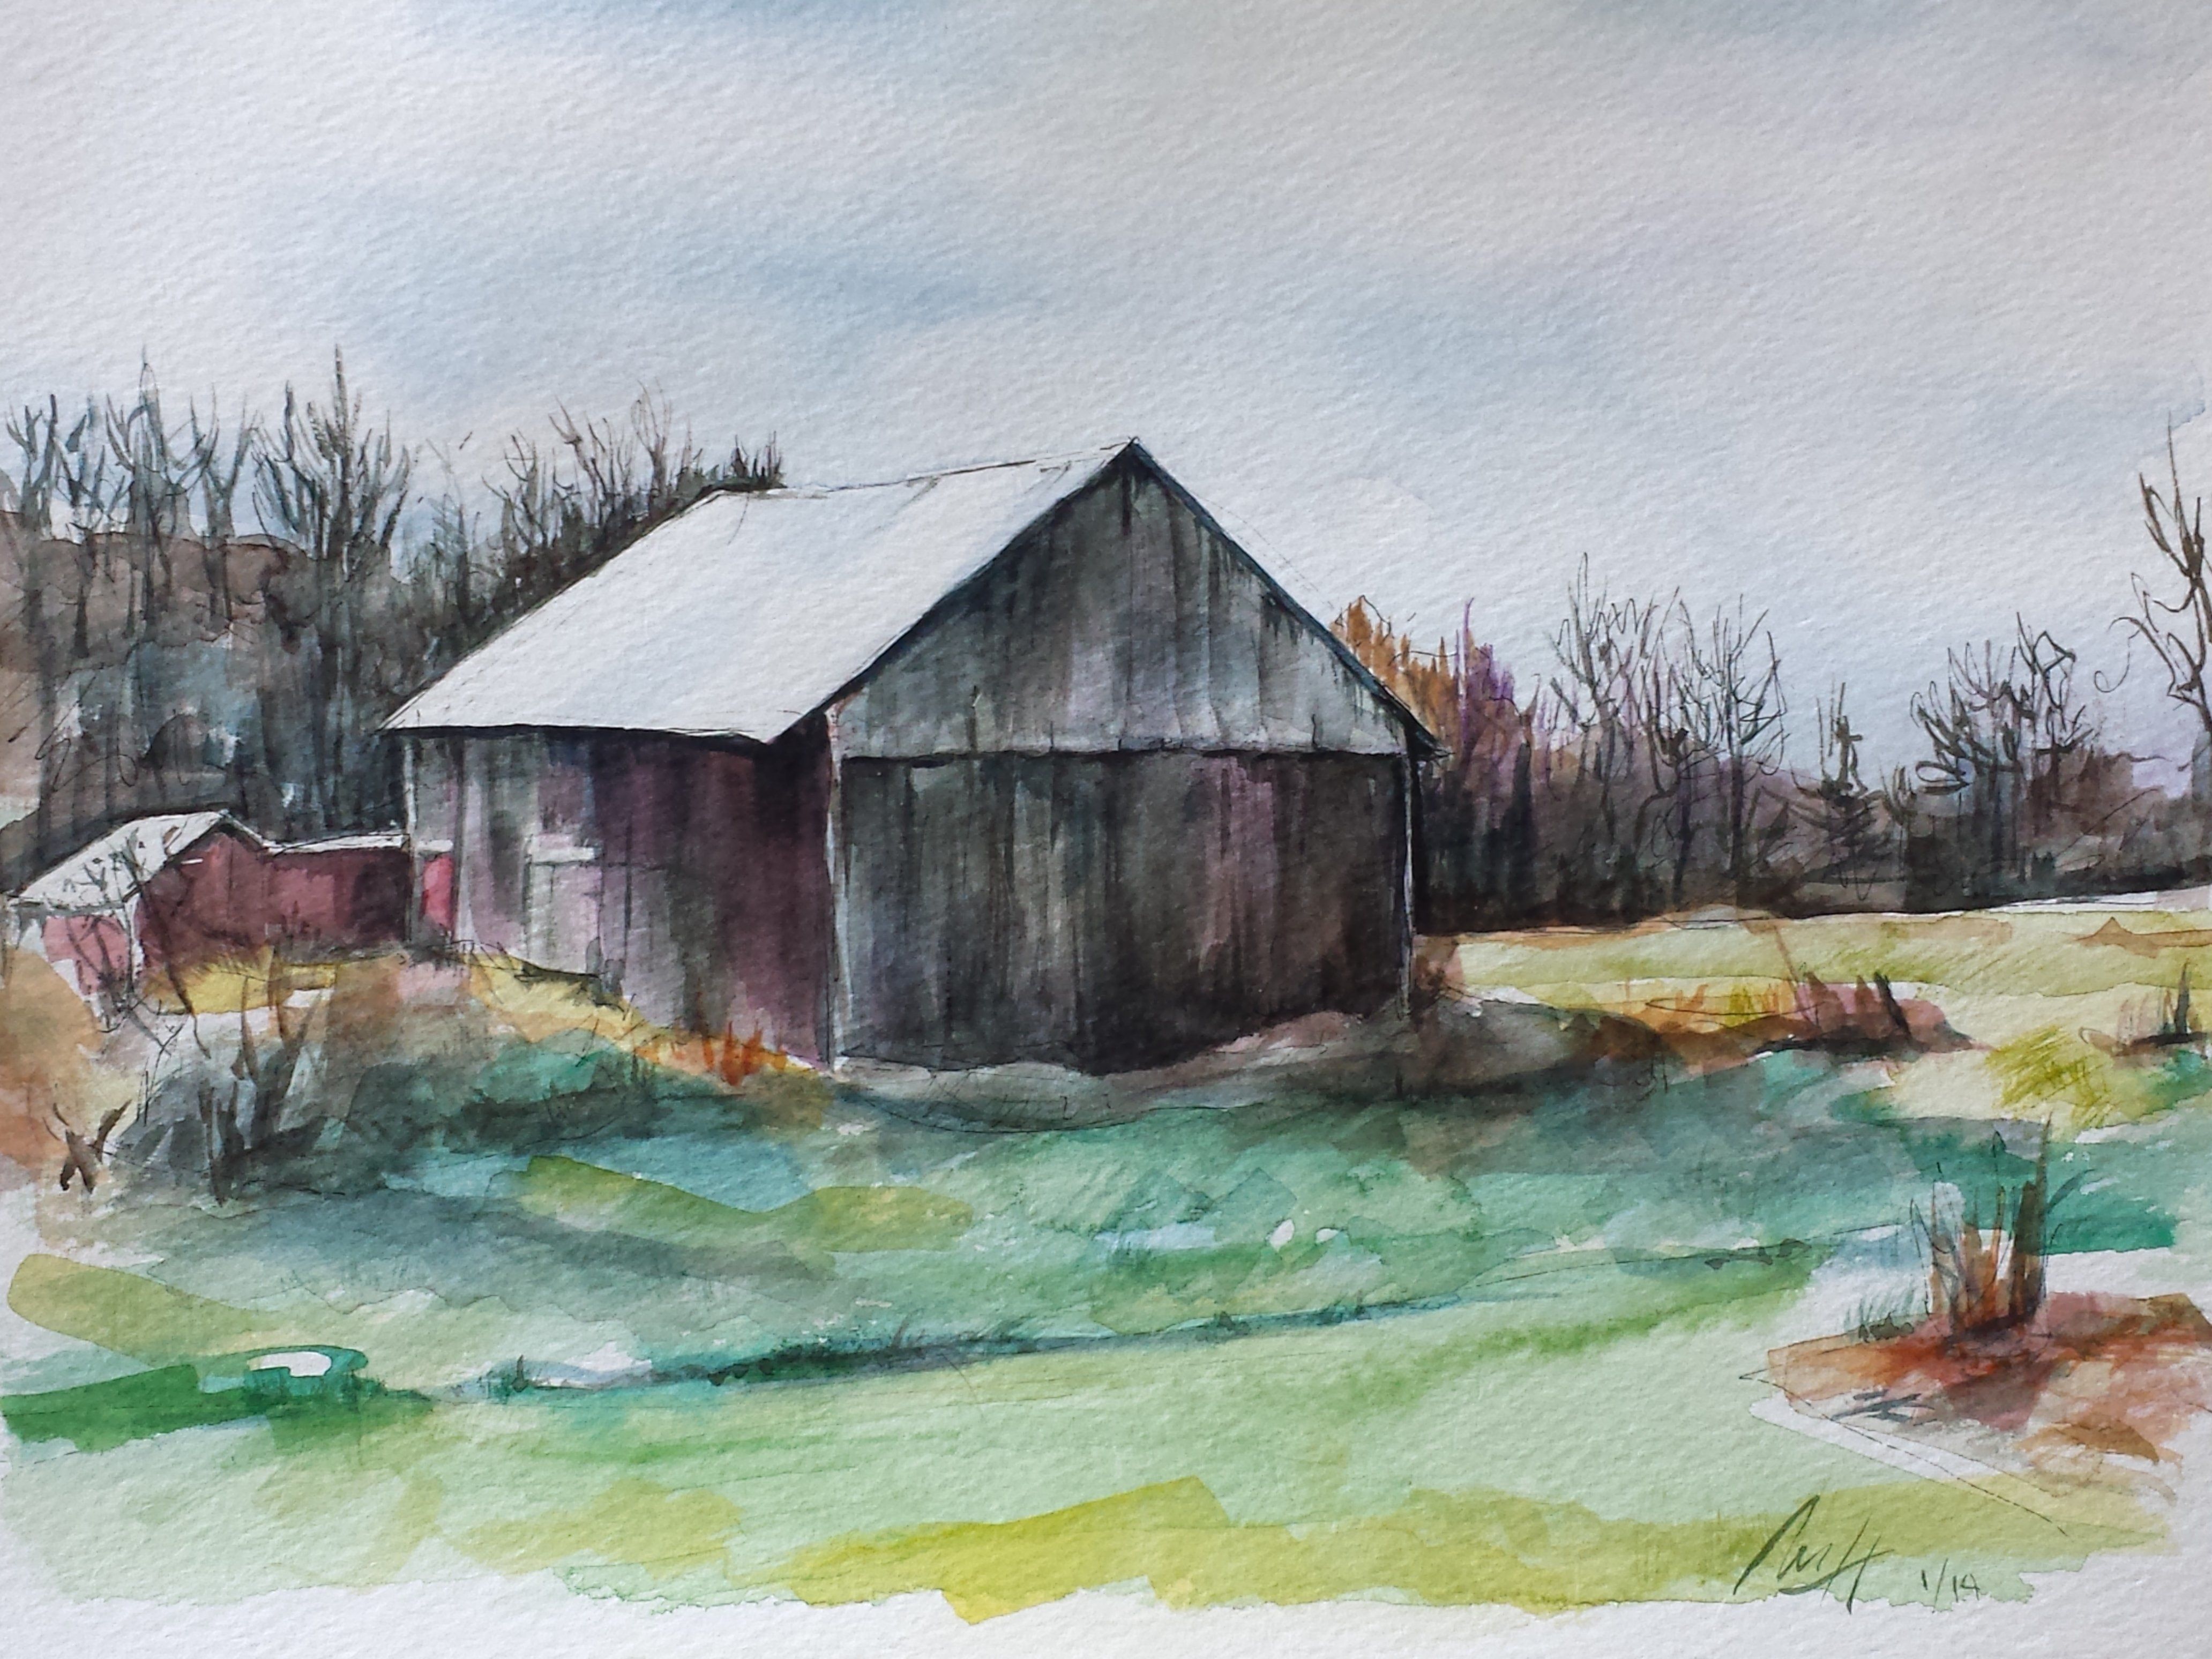 Merrilyne Hendrickson; Lebaron Family Barn, 2015, Original Watercolor, 12 x 9 inches. Artwork description: 241 An old barn belonging to high school friend s family is fondly nestled in the peaceful Cambridge Valley.  So many colors in old wood only watercolor can capture...